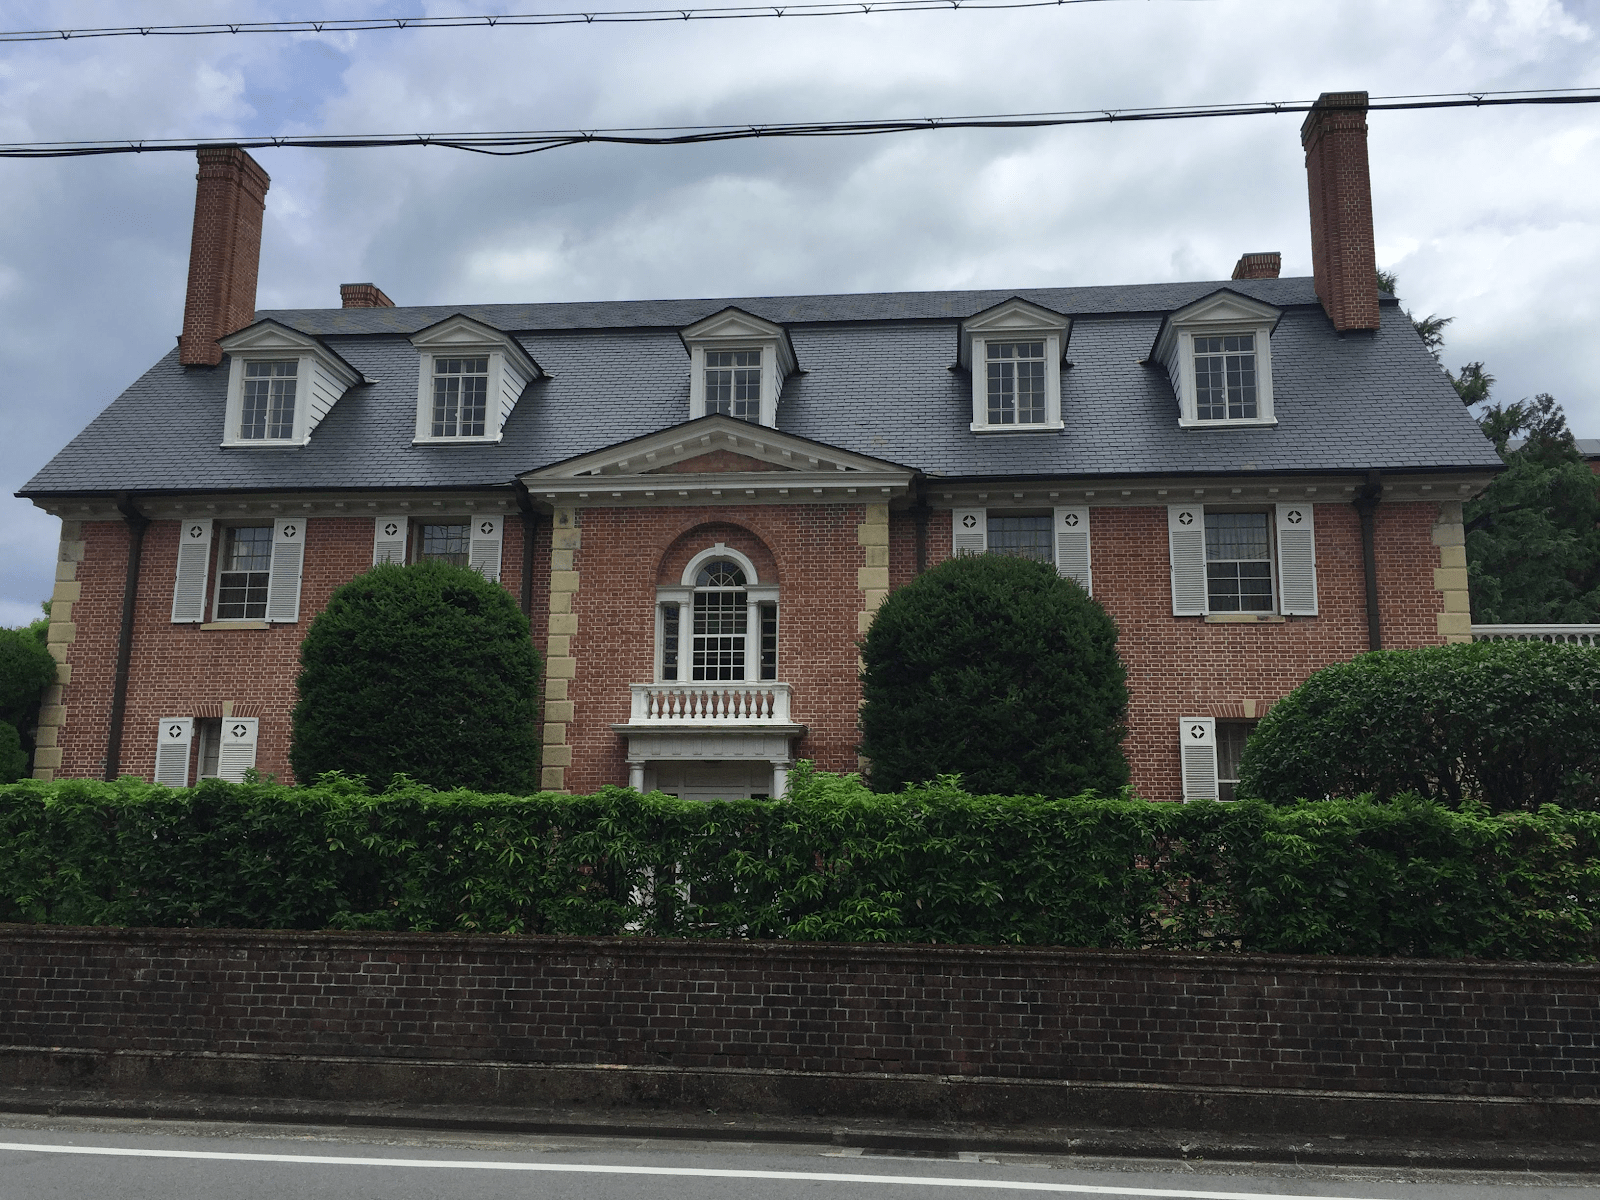 The brick building called Garman House at Doshisha University